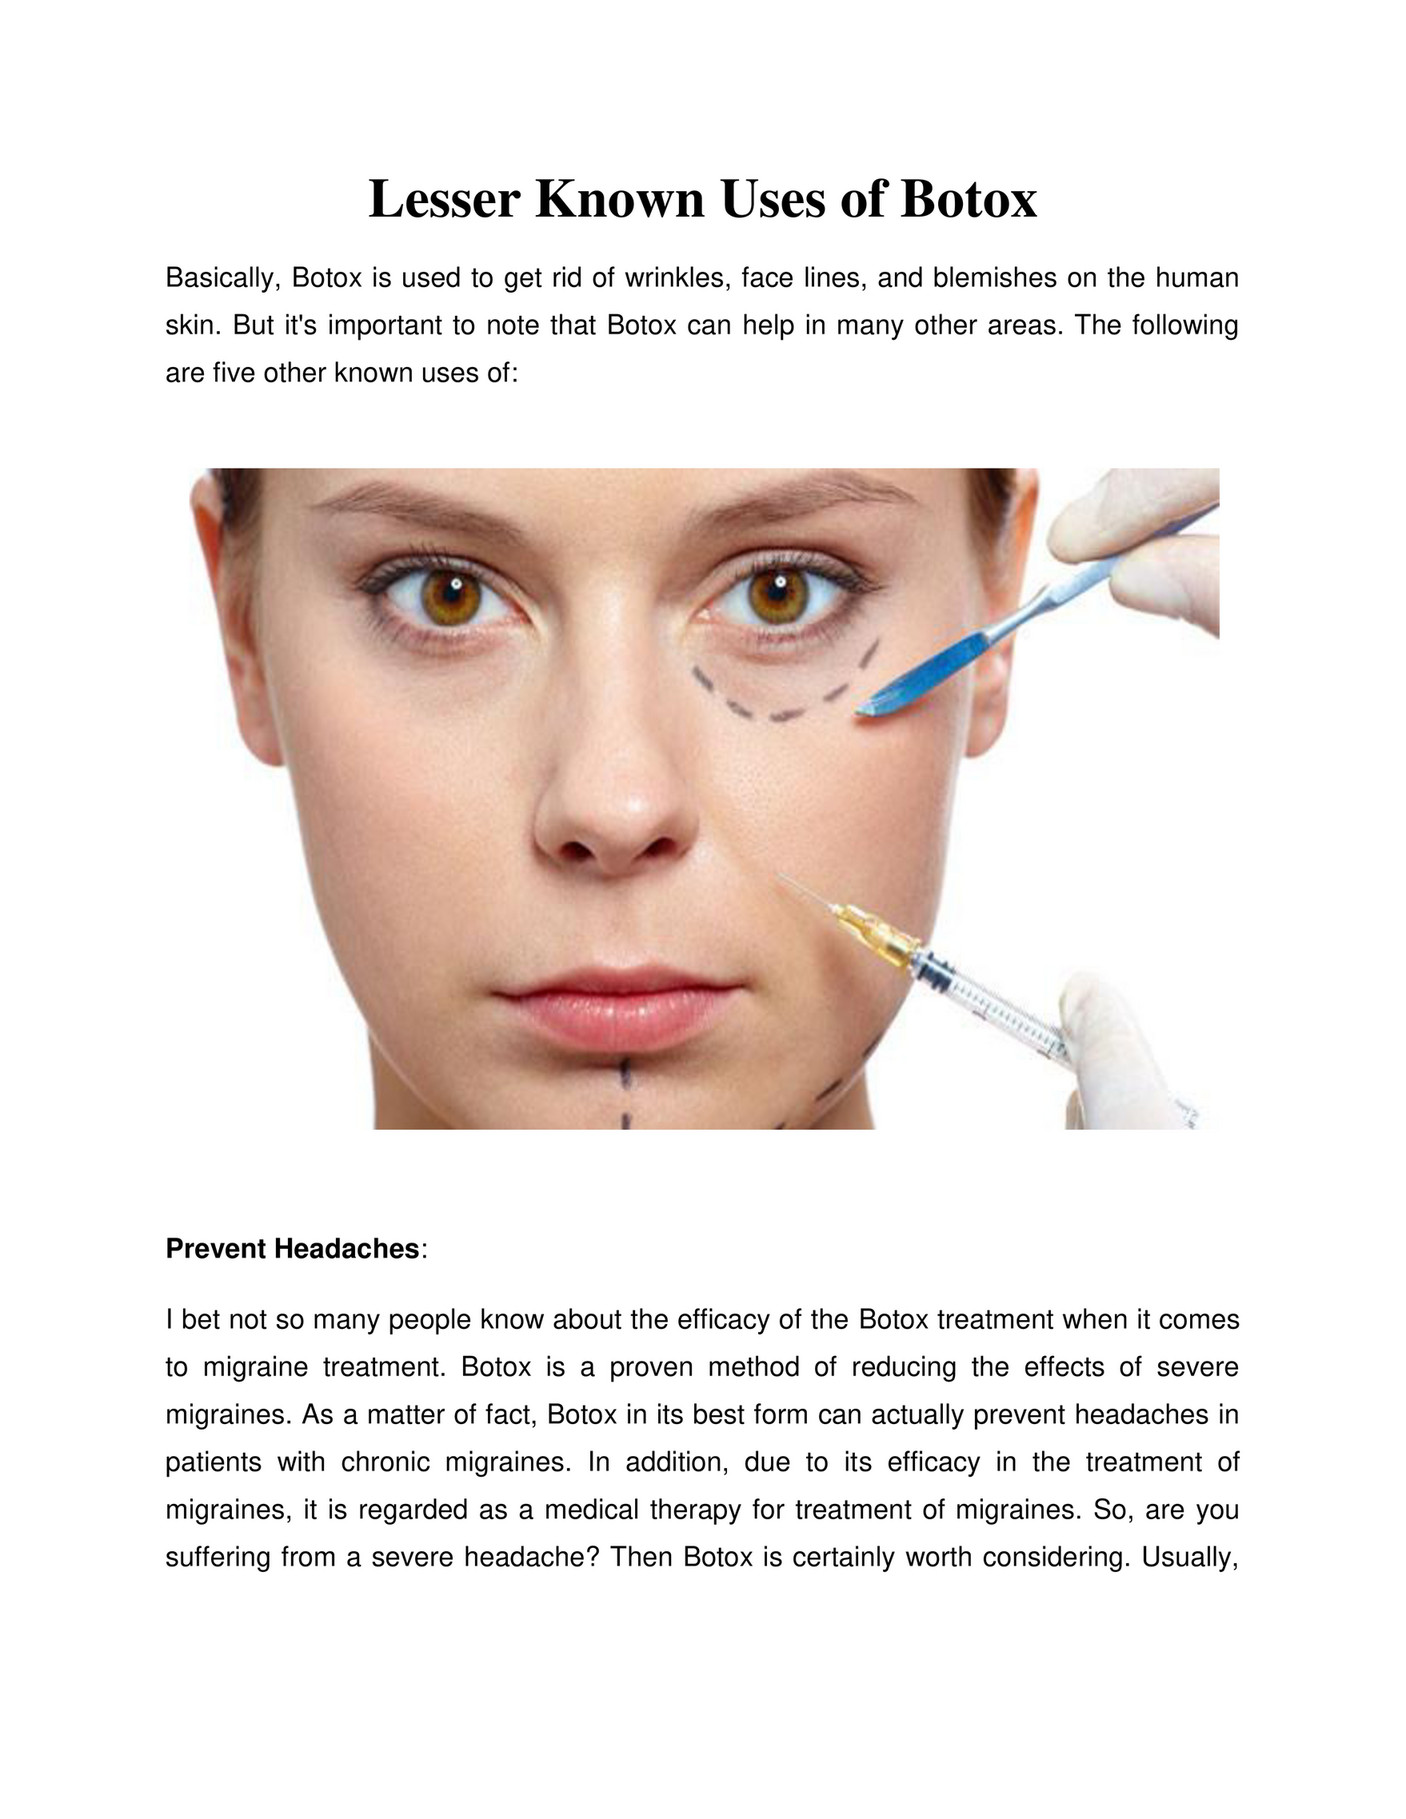 GIT Expert - Lesser Known Uses of Botox - Page 1 - Created